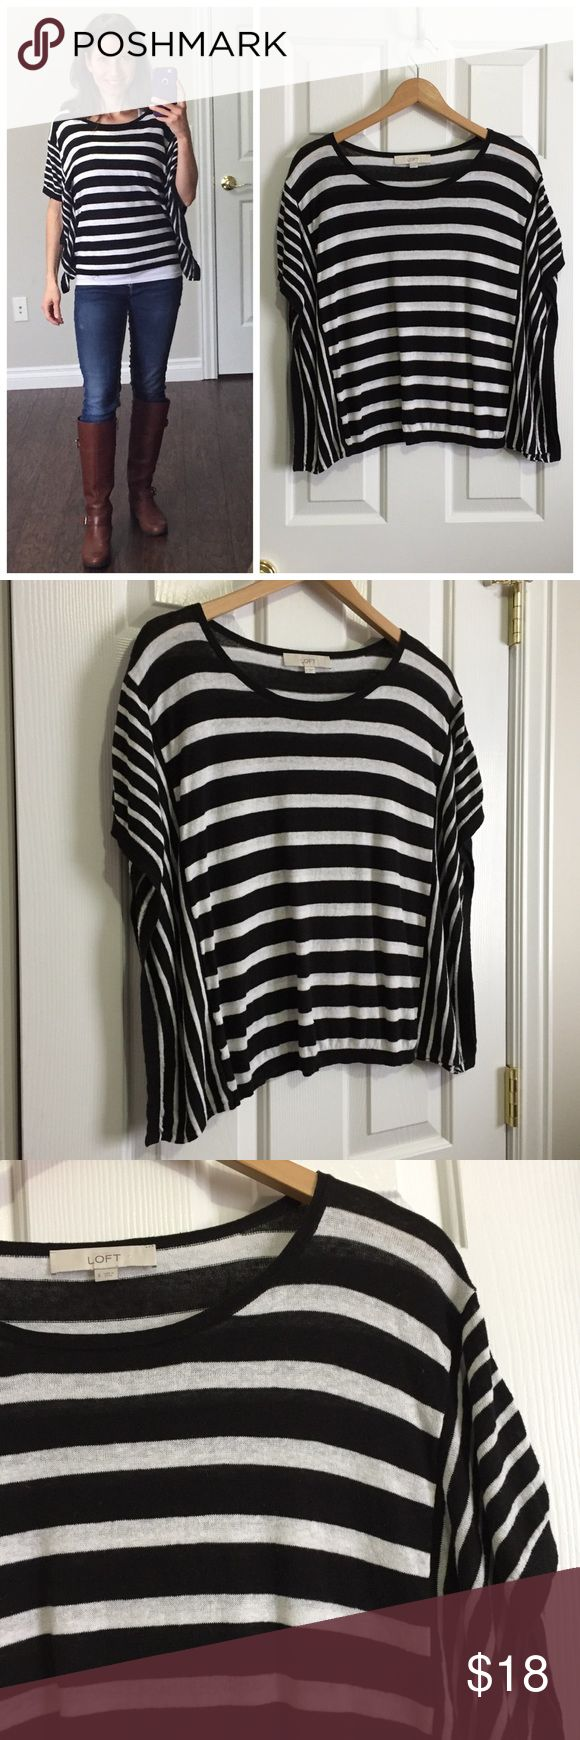 """LOFT striped batwing top LOFT black and white striped batwing top! This fun, lightweight top is perfect with a tank and jeans. Armholes are secured to give it flowy sides without exposure. 55% linen, 45% cotton. Machine wash cold.  Size small, bust measures 16.5"""".  Length is 22"""". LOFT Tops"""